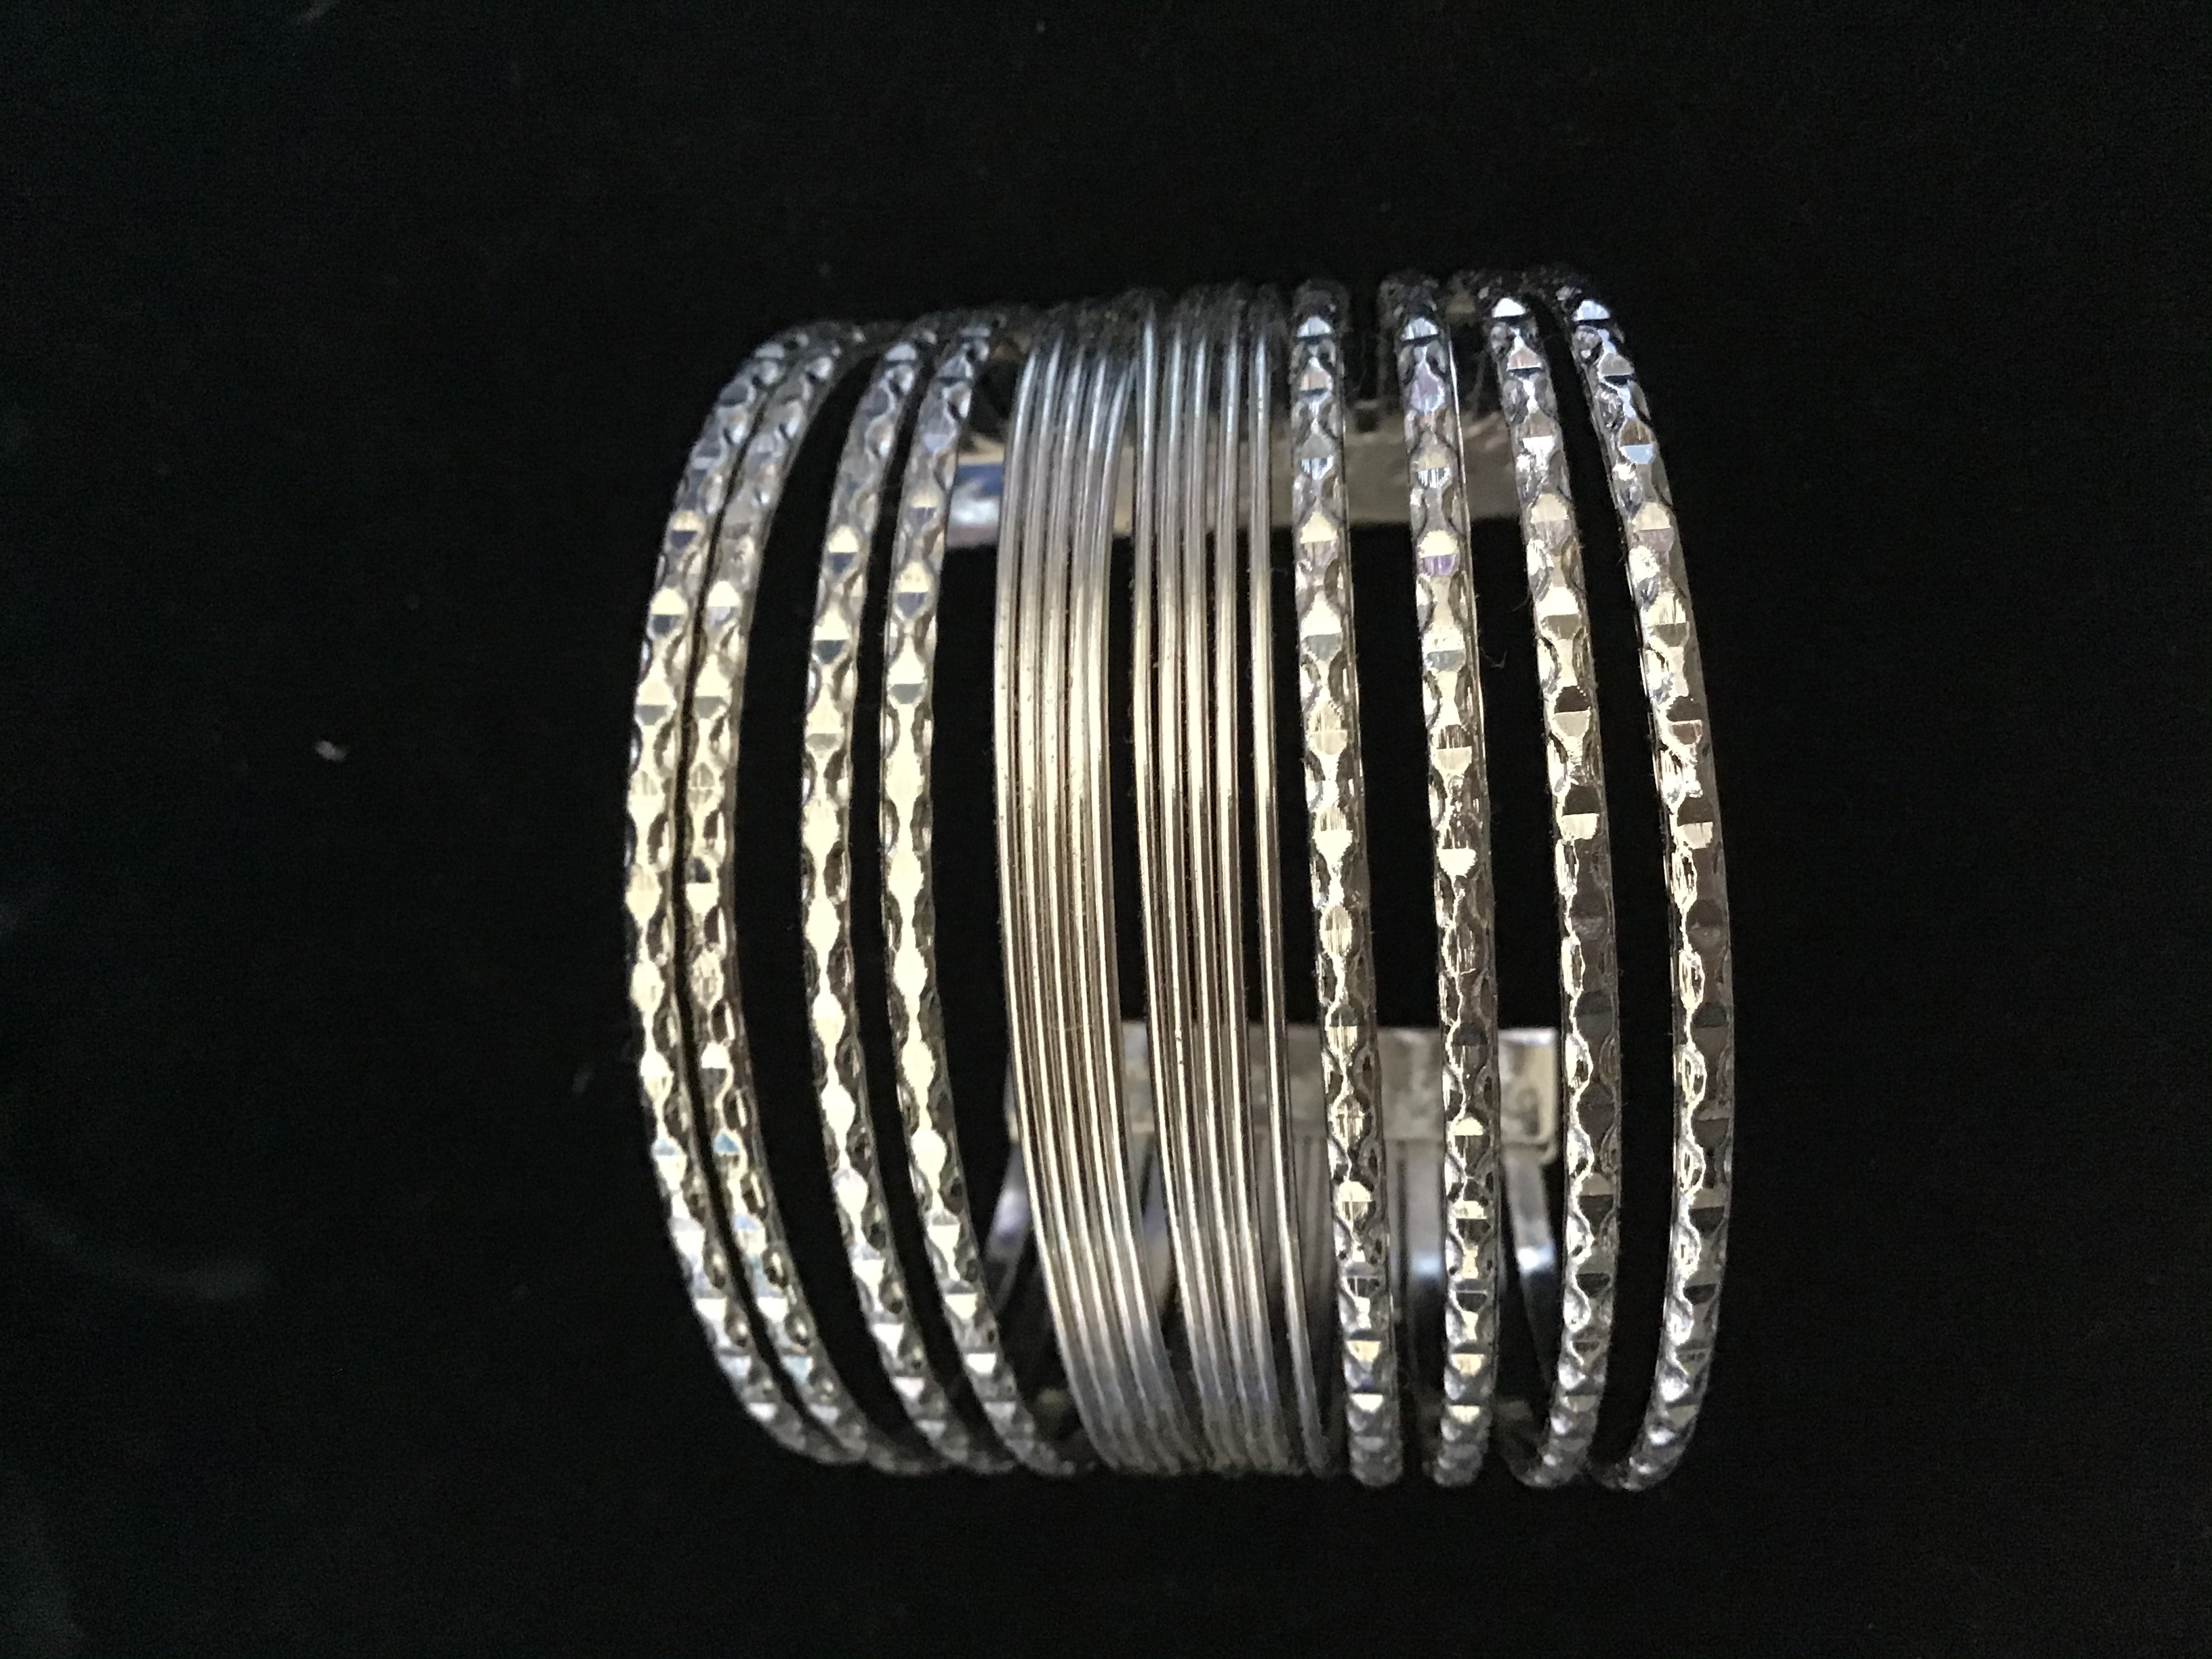 Silver Cuff style Bracelet with Open Back